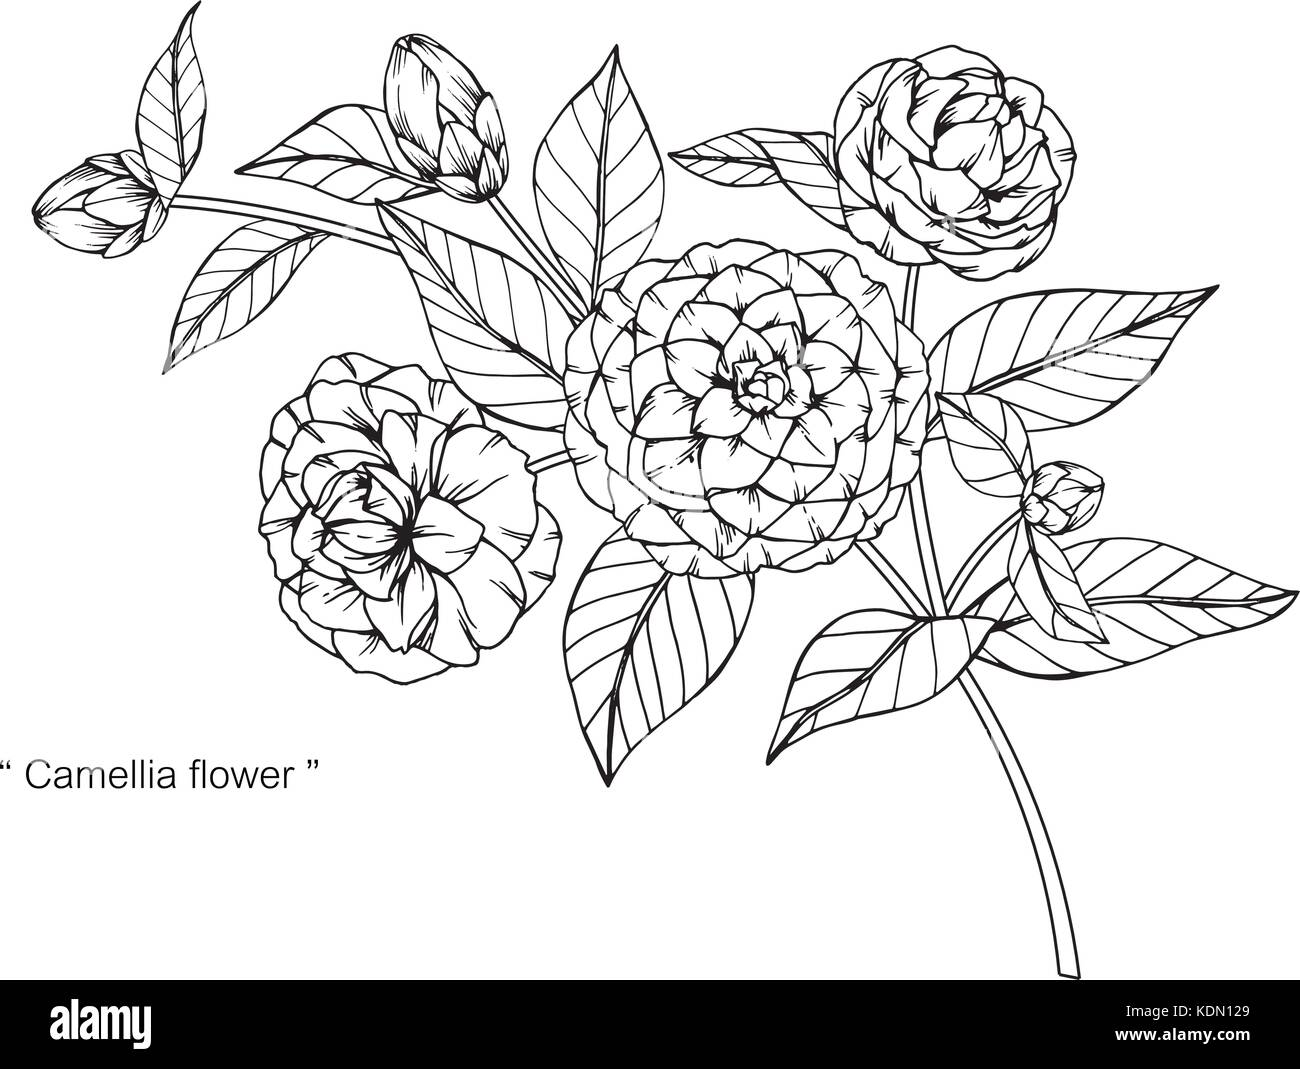 Camellia Flower Line Drawing : Camellia flower drawing illustration black and white with